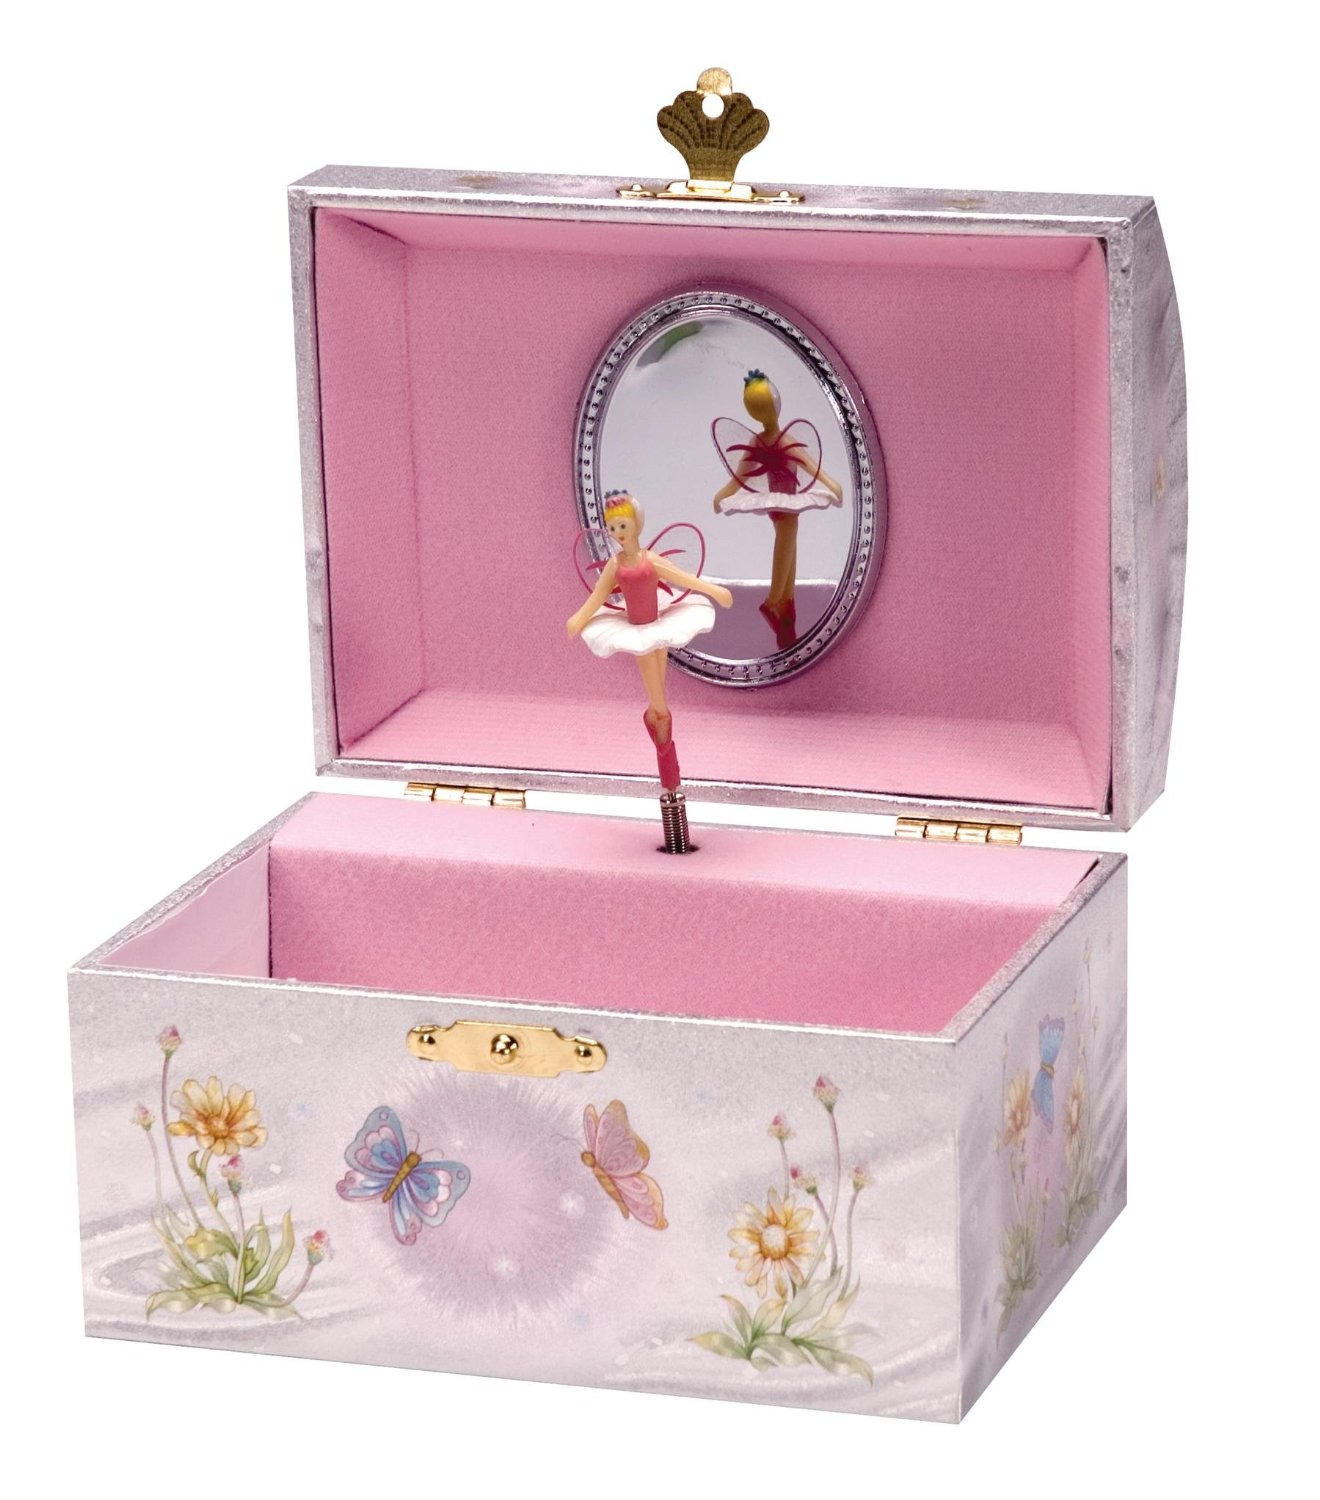 Jewelry box gifts for valentine 39 s day for Amazon ballerina musical jewelry box